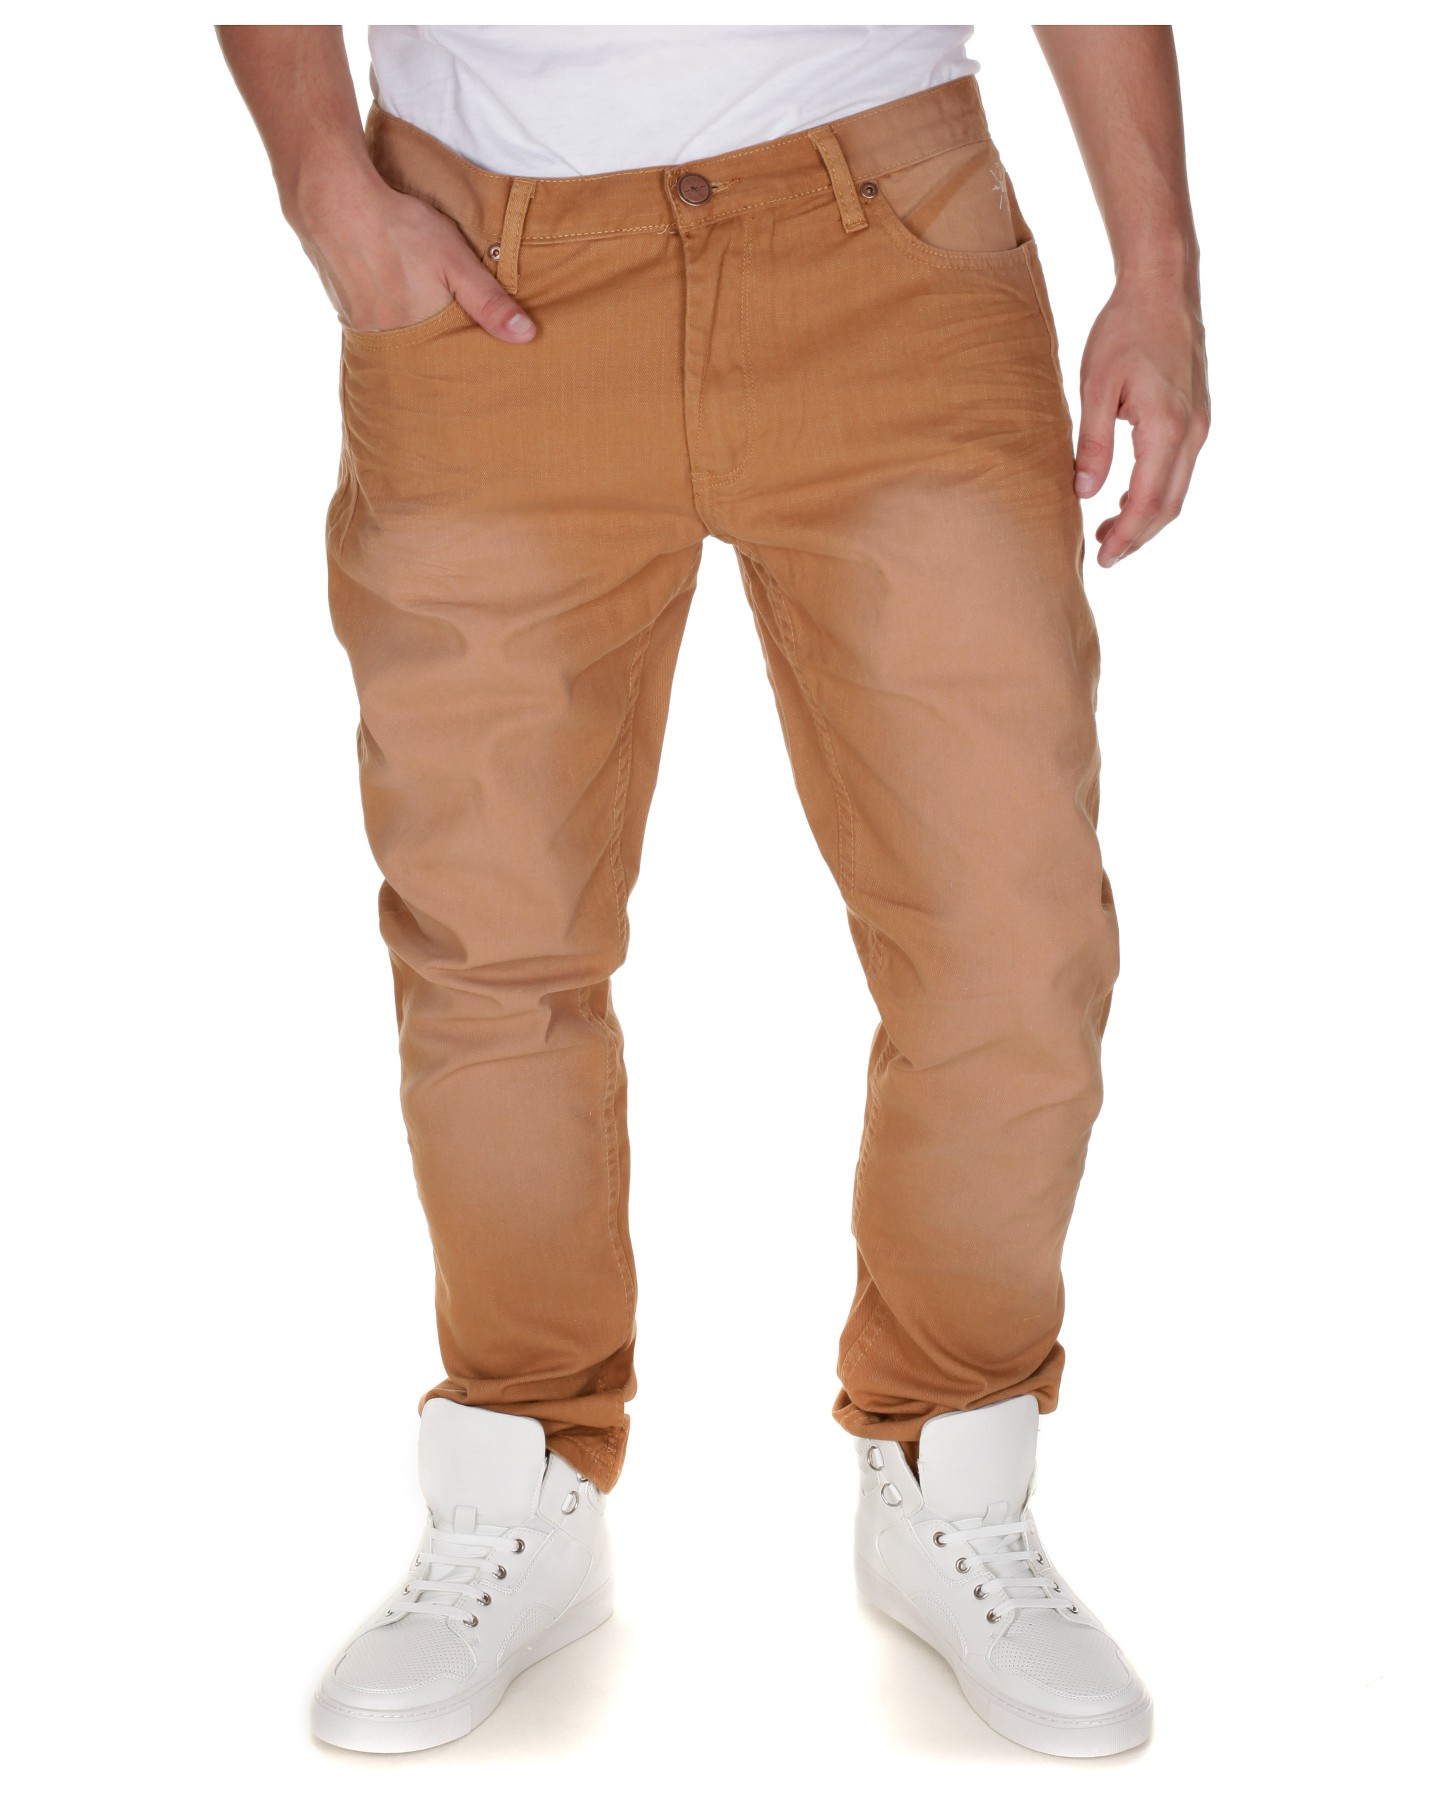 Blue-Inc-Mens-BC-London-Colour-Twill-Jeans-Carrot-Fit-Camel